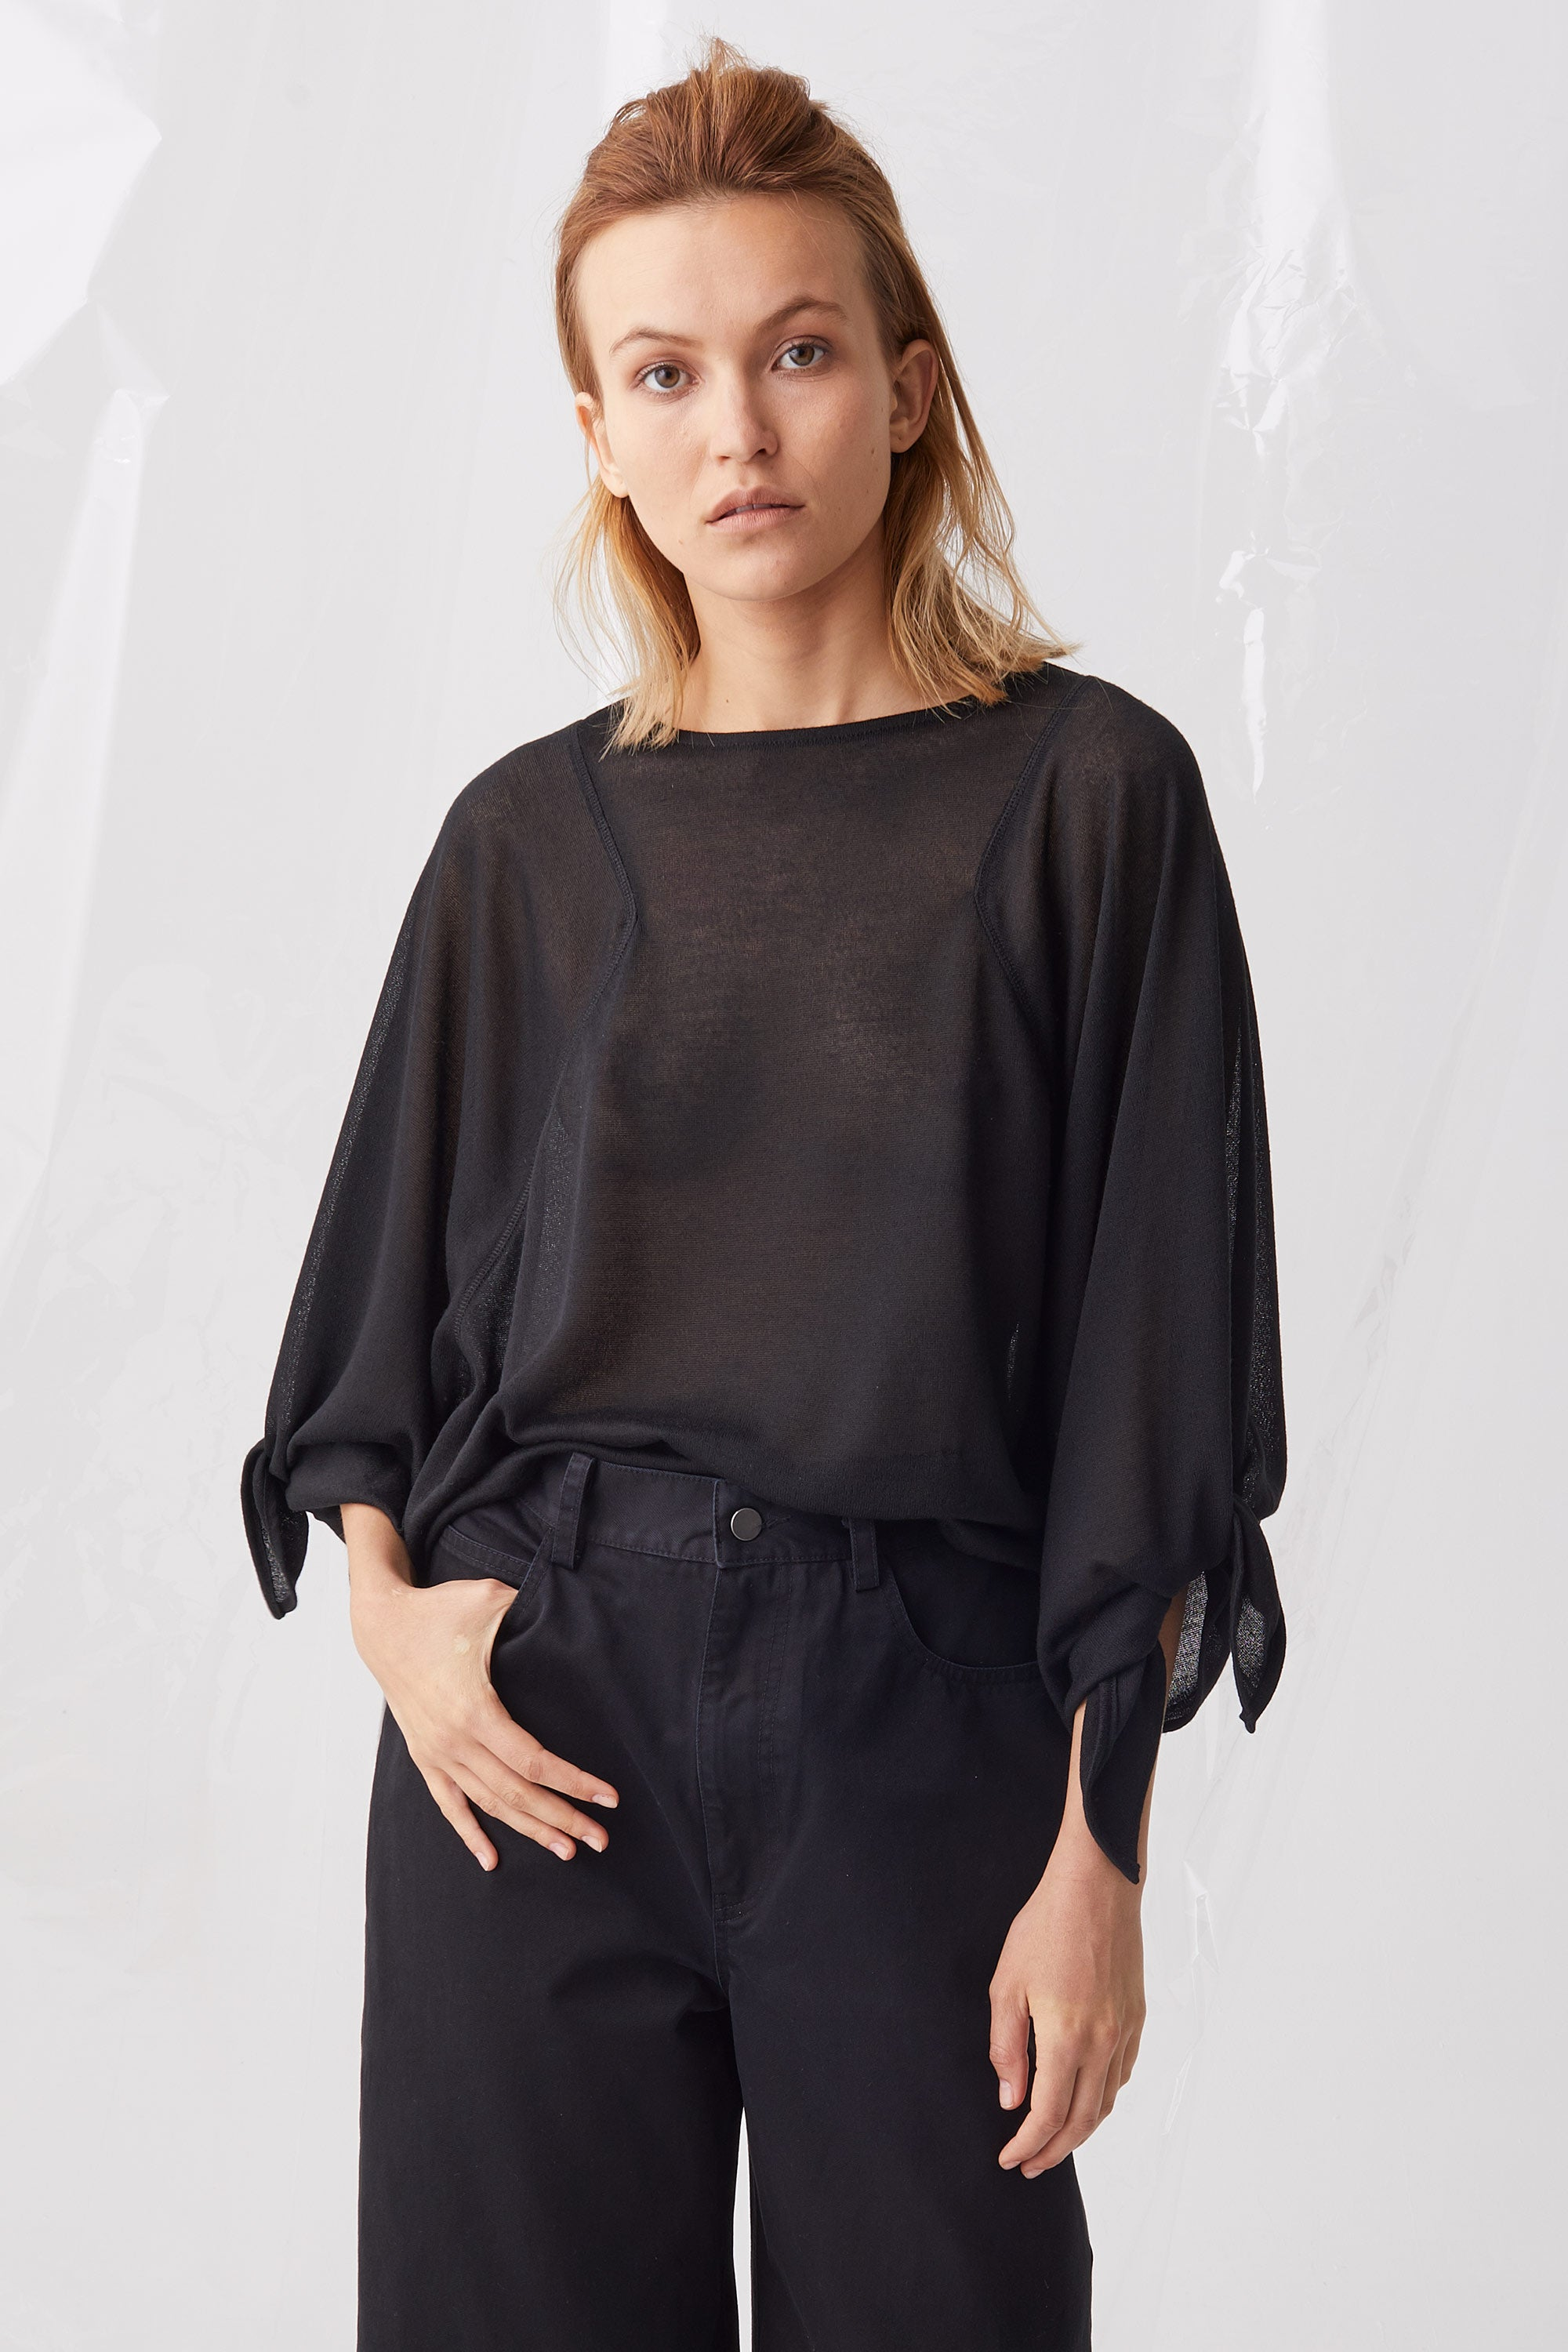 Ricochet NZ Fashion Designer Clothing Boutique SS18 Nuzu Top Rie Sleeve Made in NZ